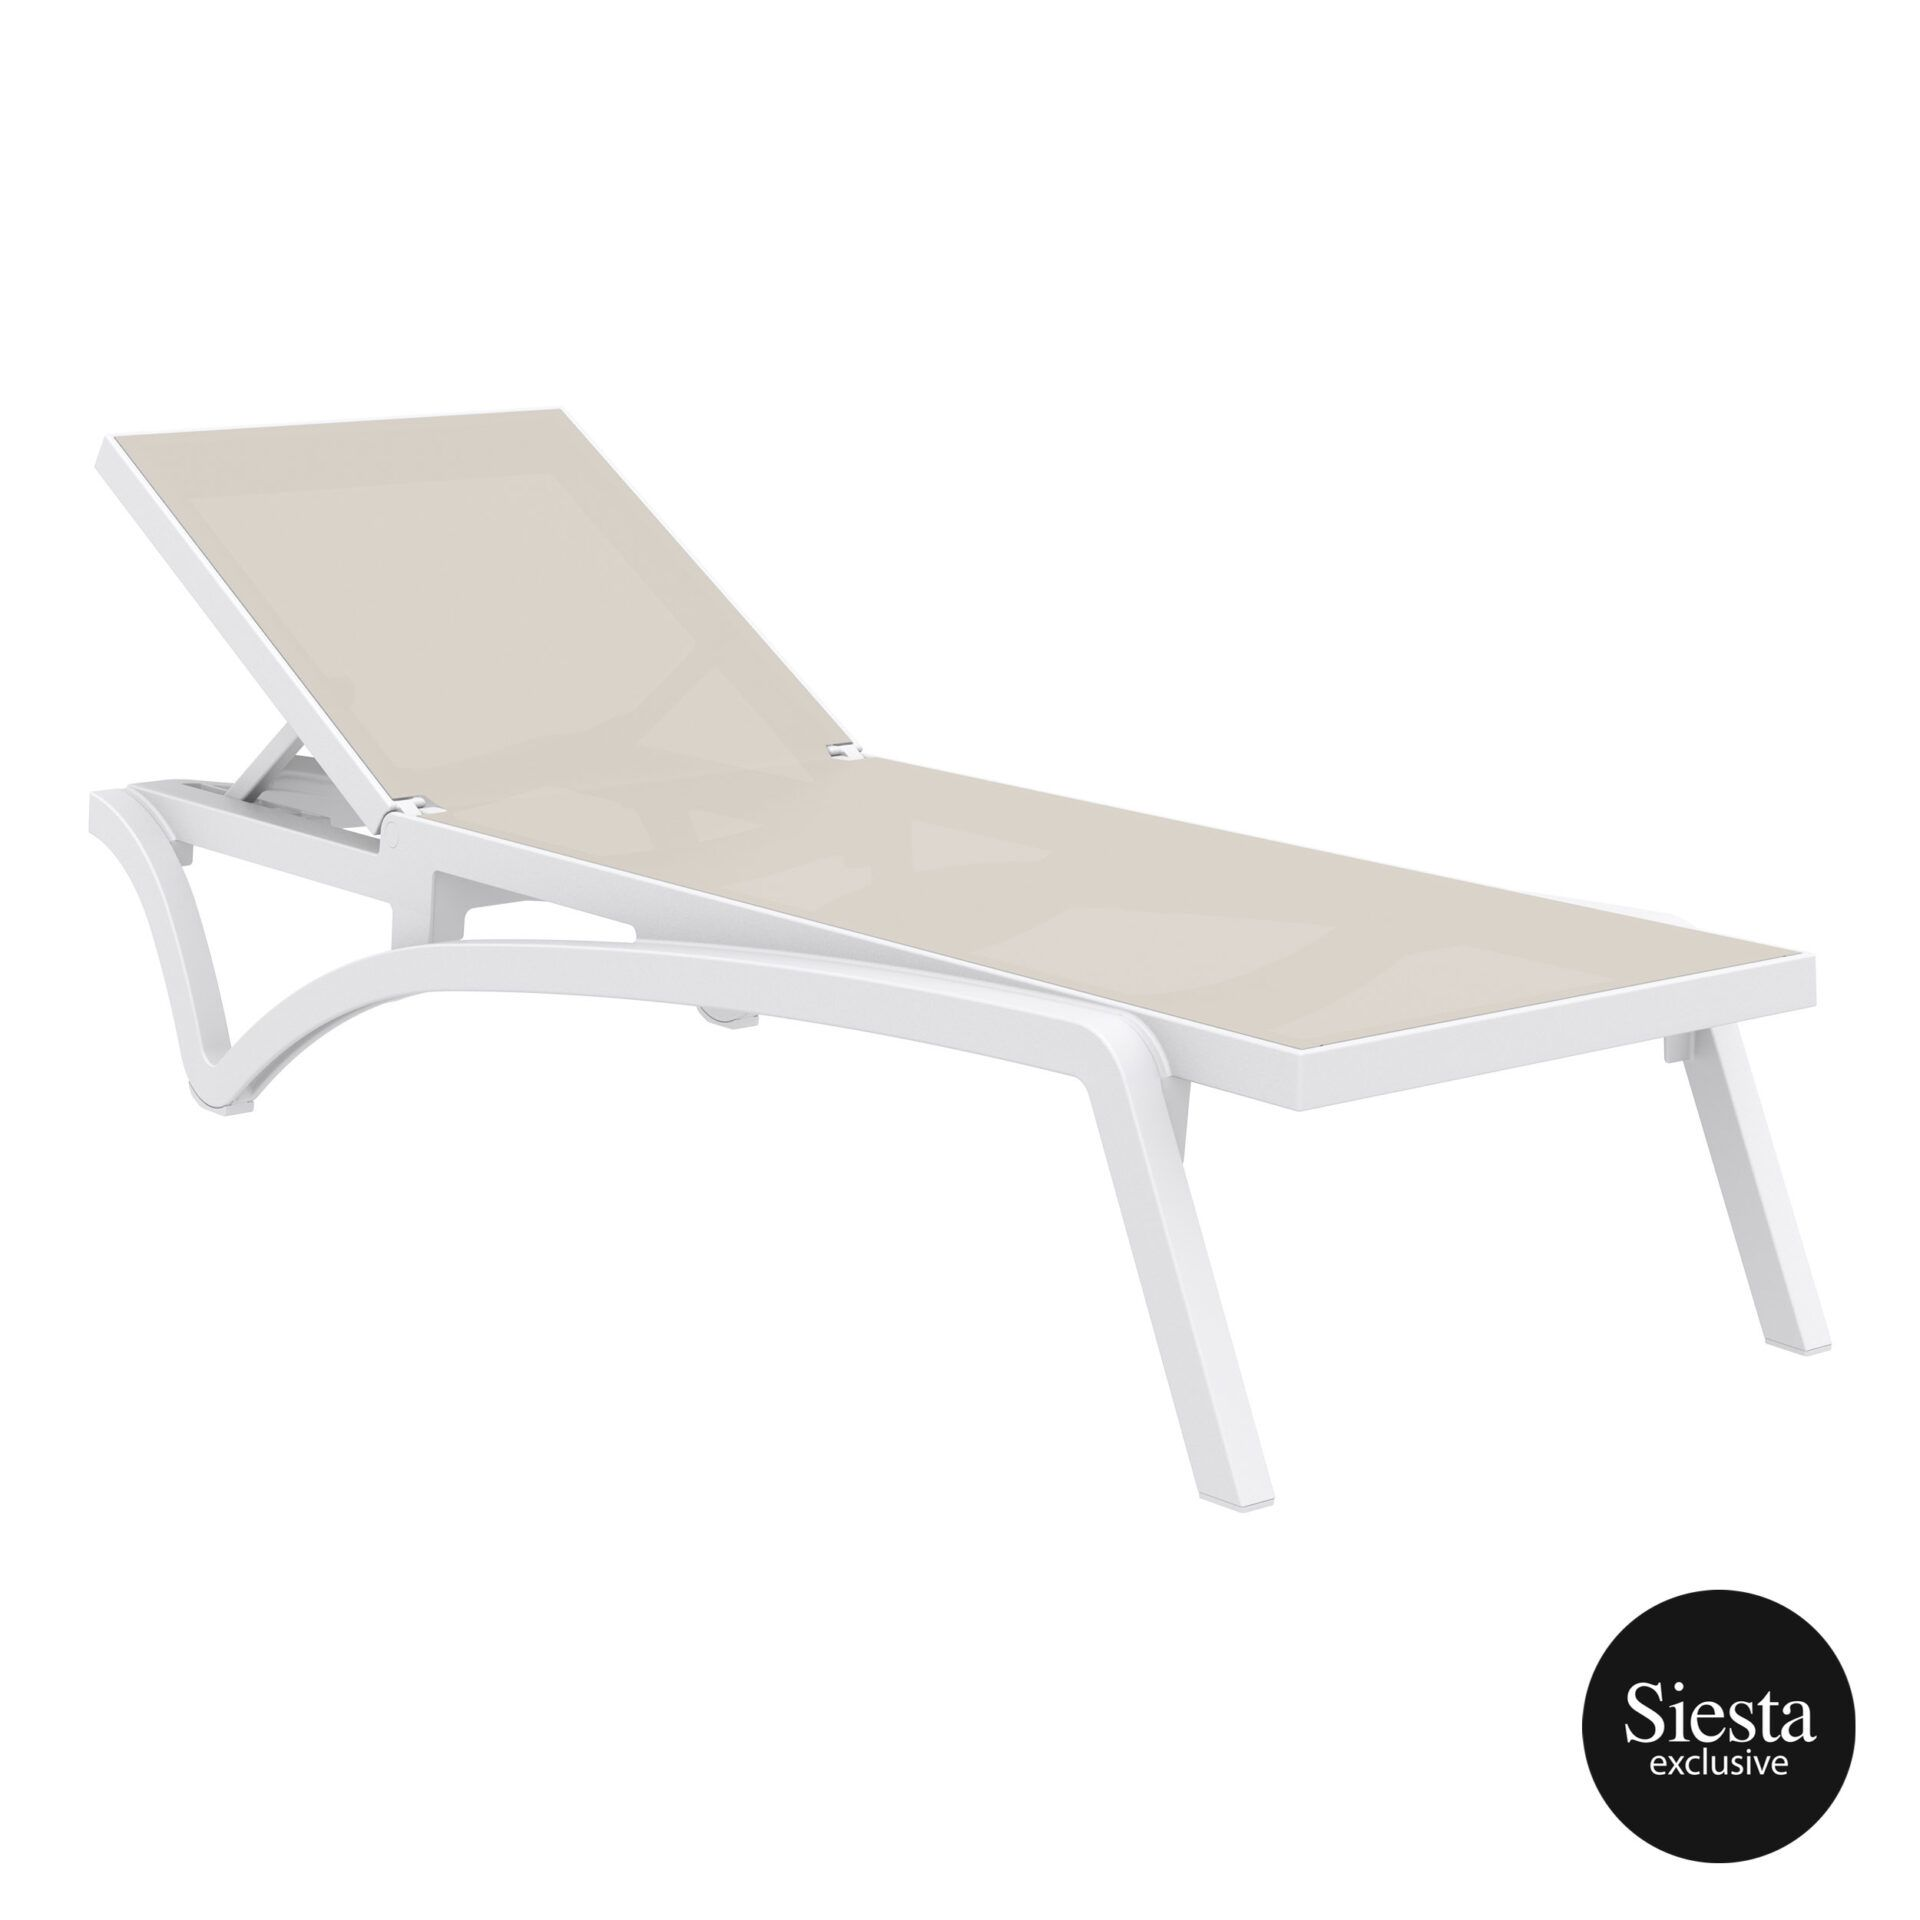 pool deck commercial pacific sunlounger white dovegrey front side